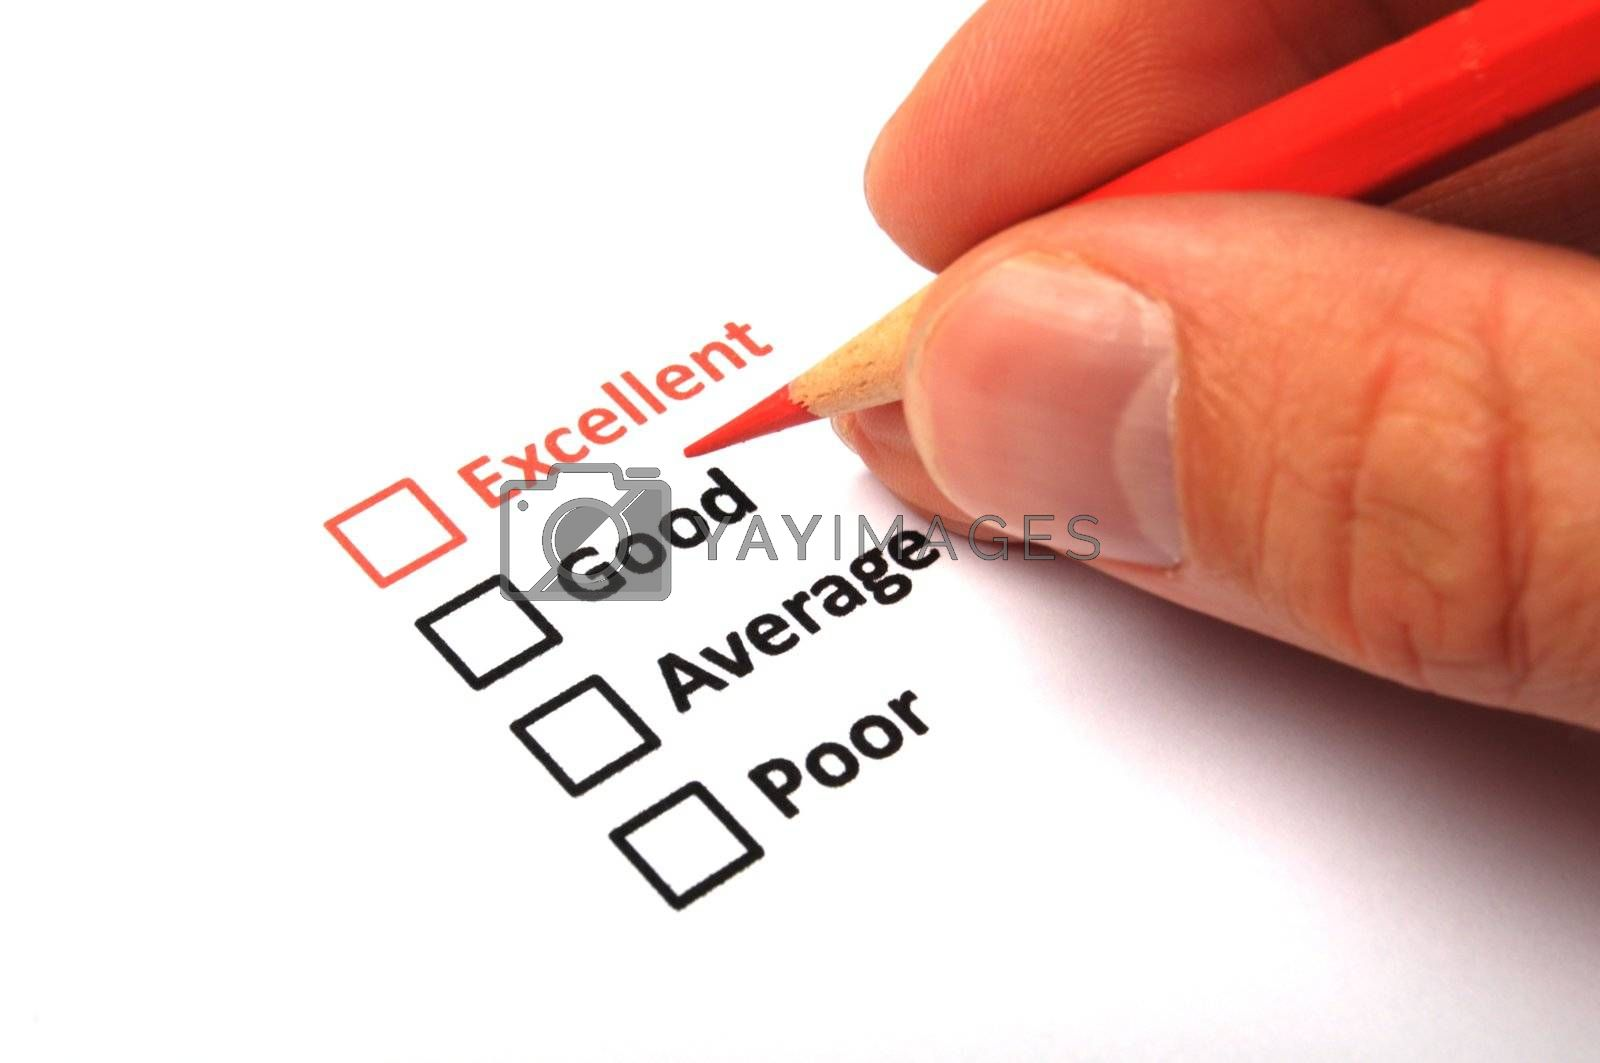 customer service survey with checkbox on form an red pencil